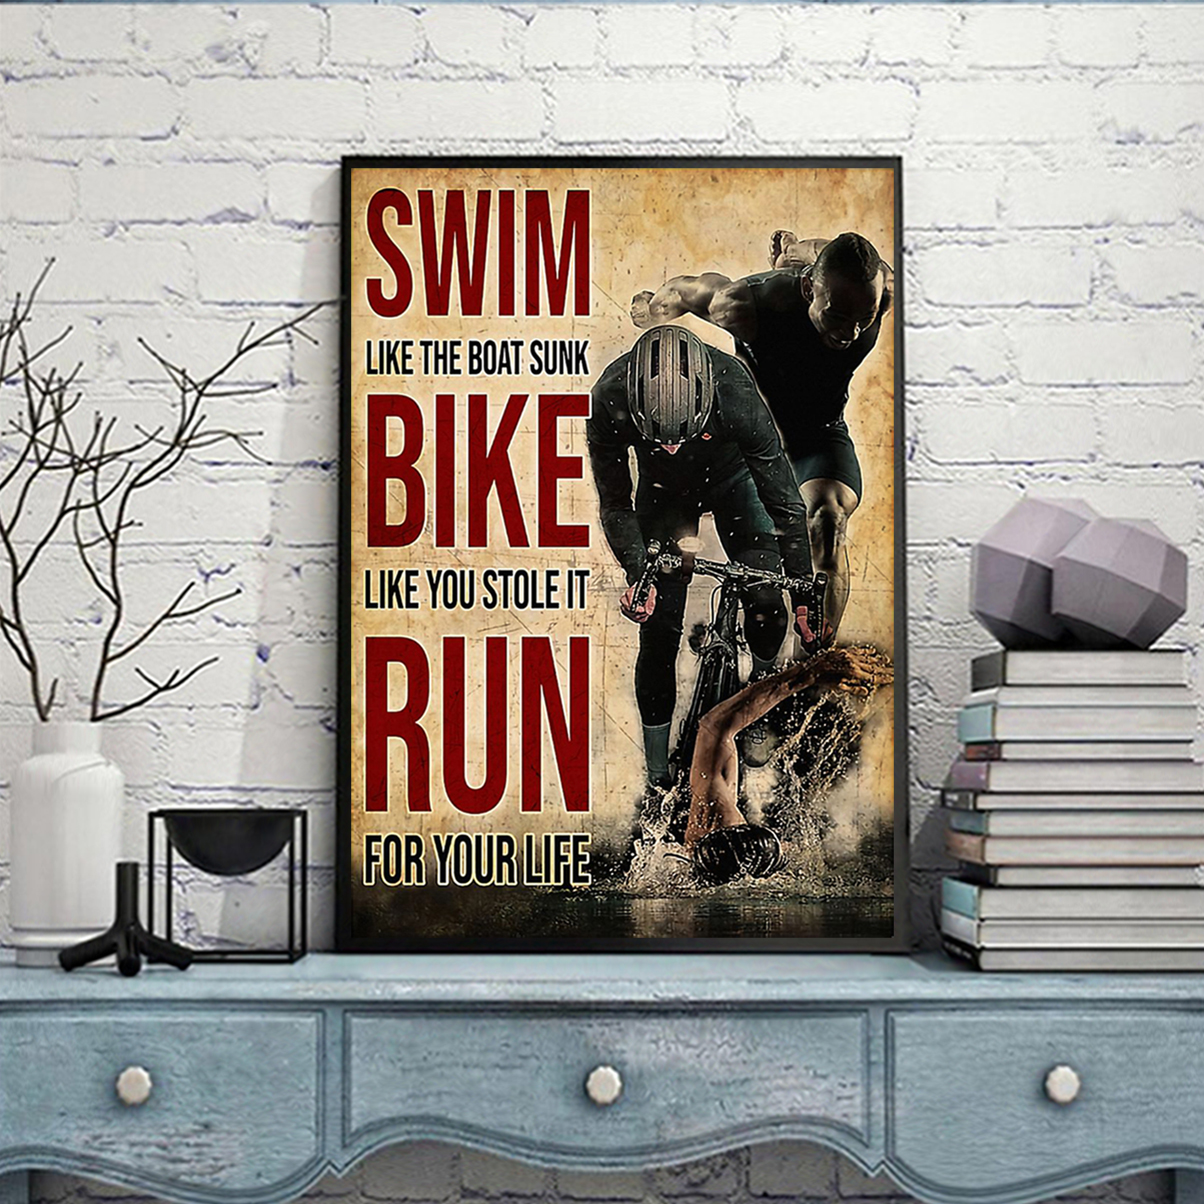 Swim like the boat sunk bike like you stole it run for your life poster A1